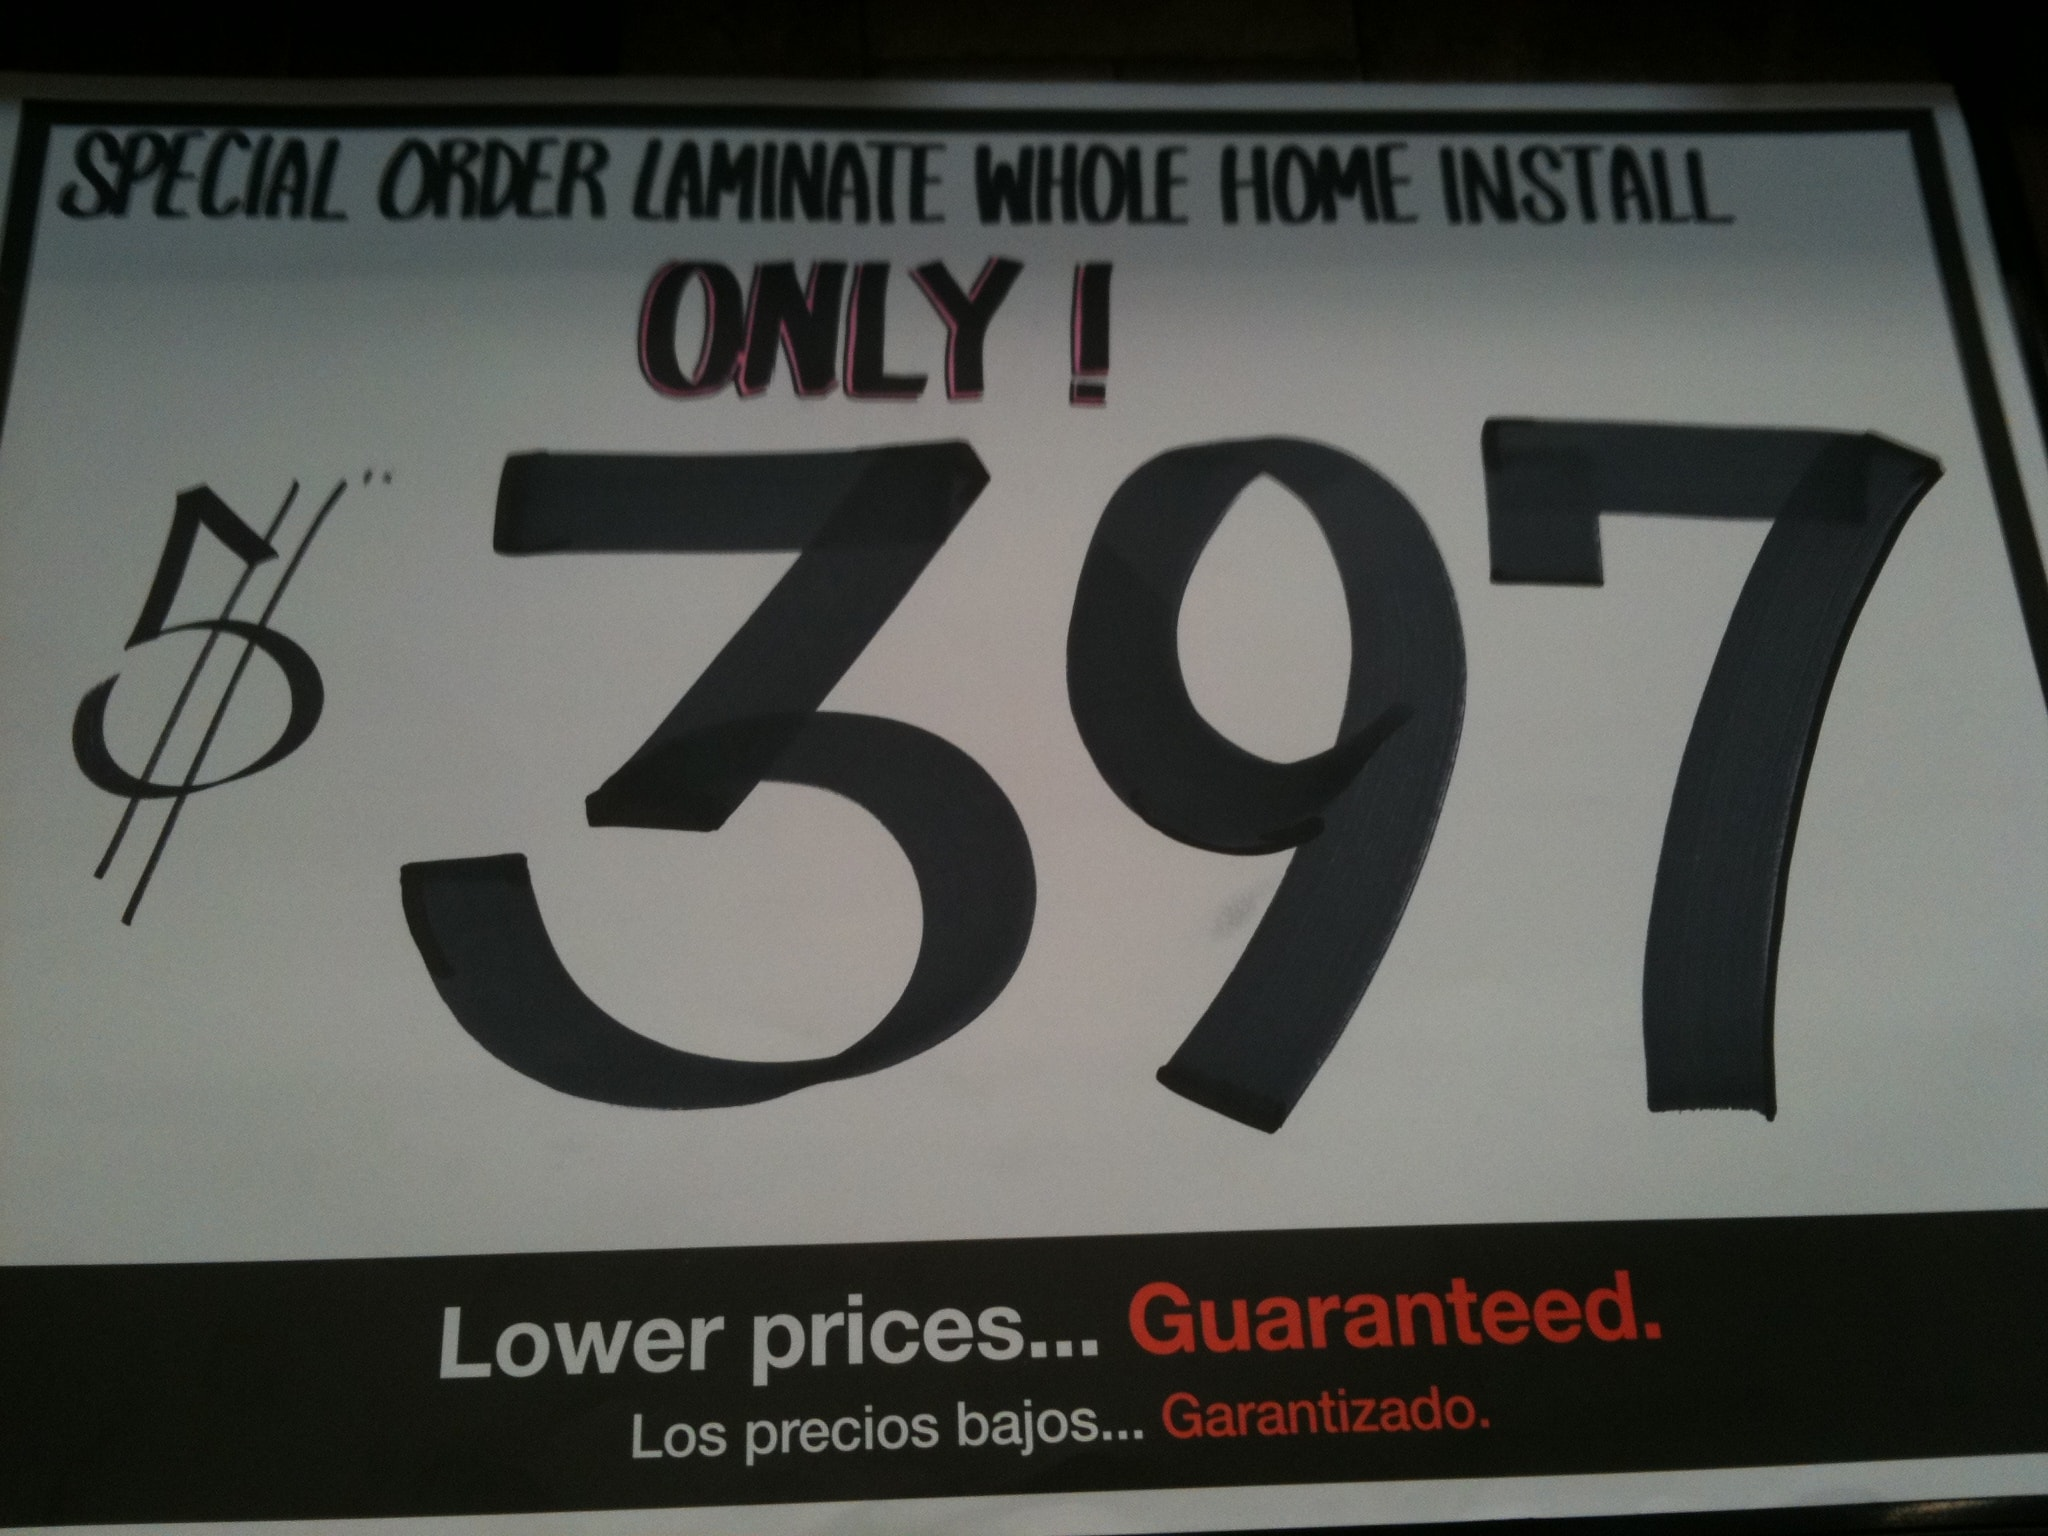 $397 Whole house laminate installation at Home Depot